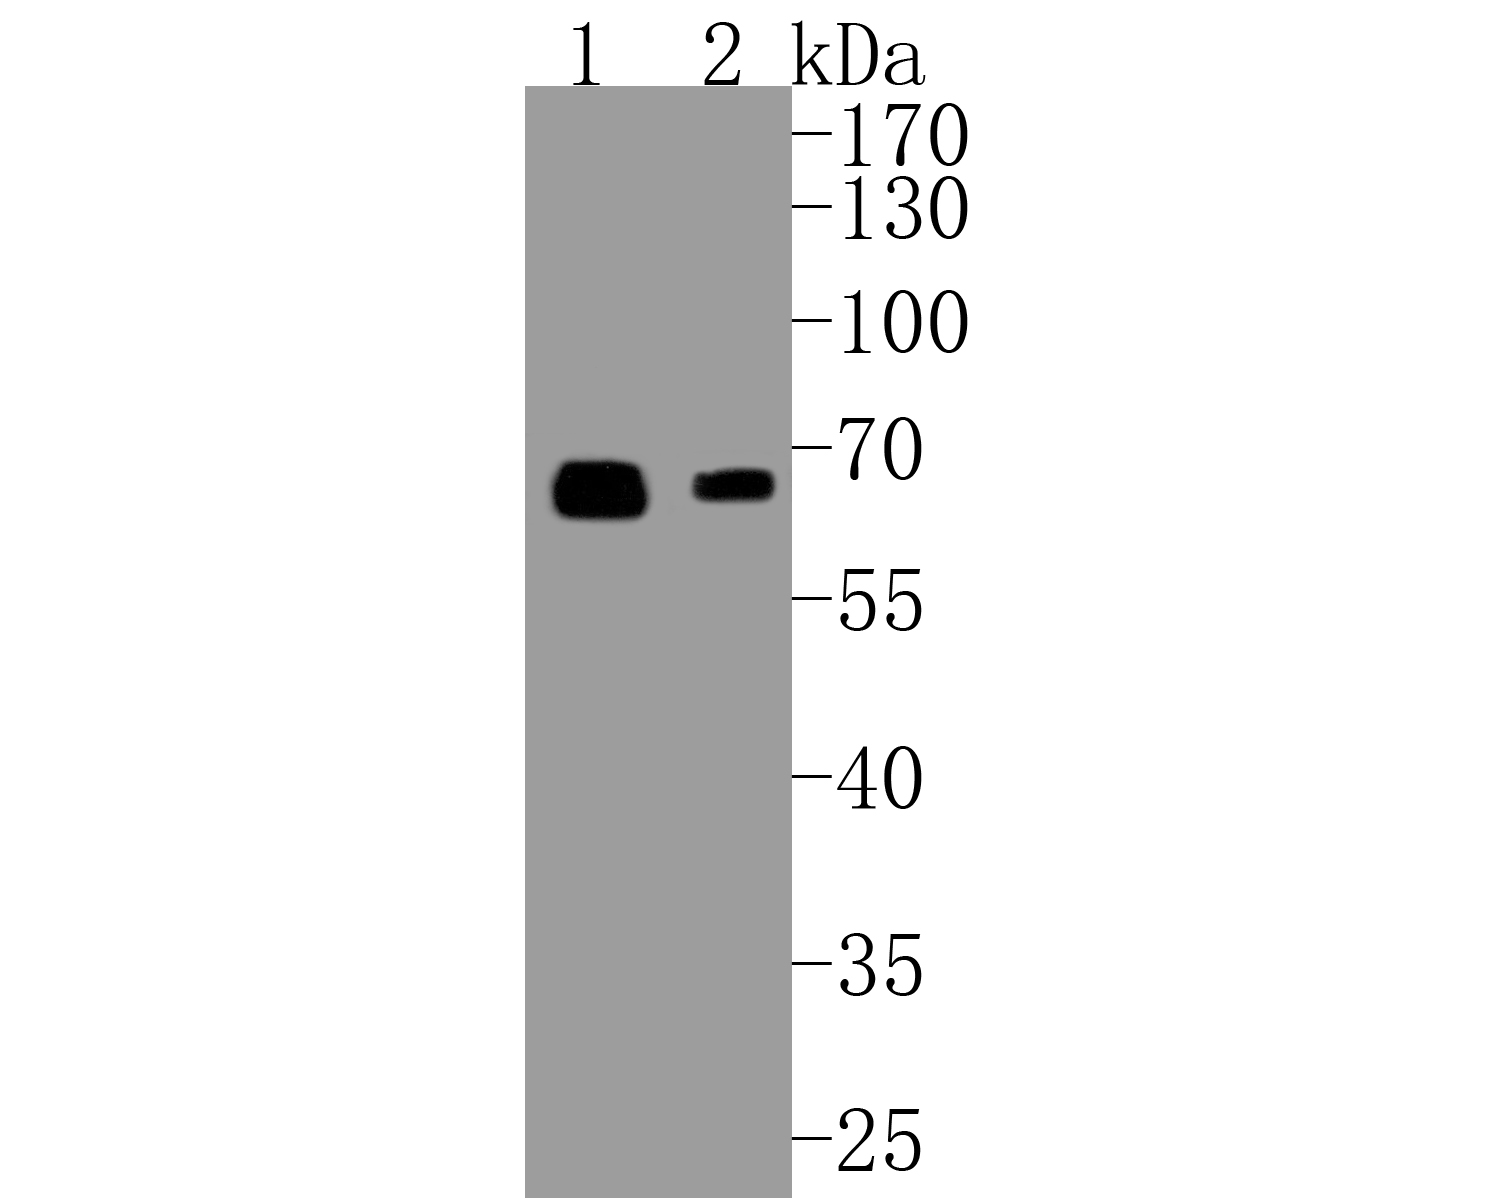 Western blot analysis of Smad4 on different lysates. Proteins were transferred to a PVDF membrane and blocked with 5% BSA in PBS for 1 hour at room temperature. The primary antibody (ET1604-12, 1/500) was used in 5% BSA at room temperature for 2 hours. Goat Anti-Rabbit IgG - HRP Secondary Antibody (HA1001) at 1:5,000 dilution was used for 1 hour at room temperature.<br /> Positive control: <br /> Lane 1: PC-12 cell lysate<br /> Lane 2: SH-SY5Y cell lysate